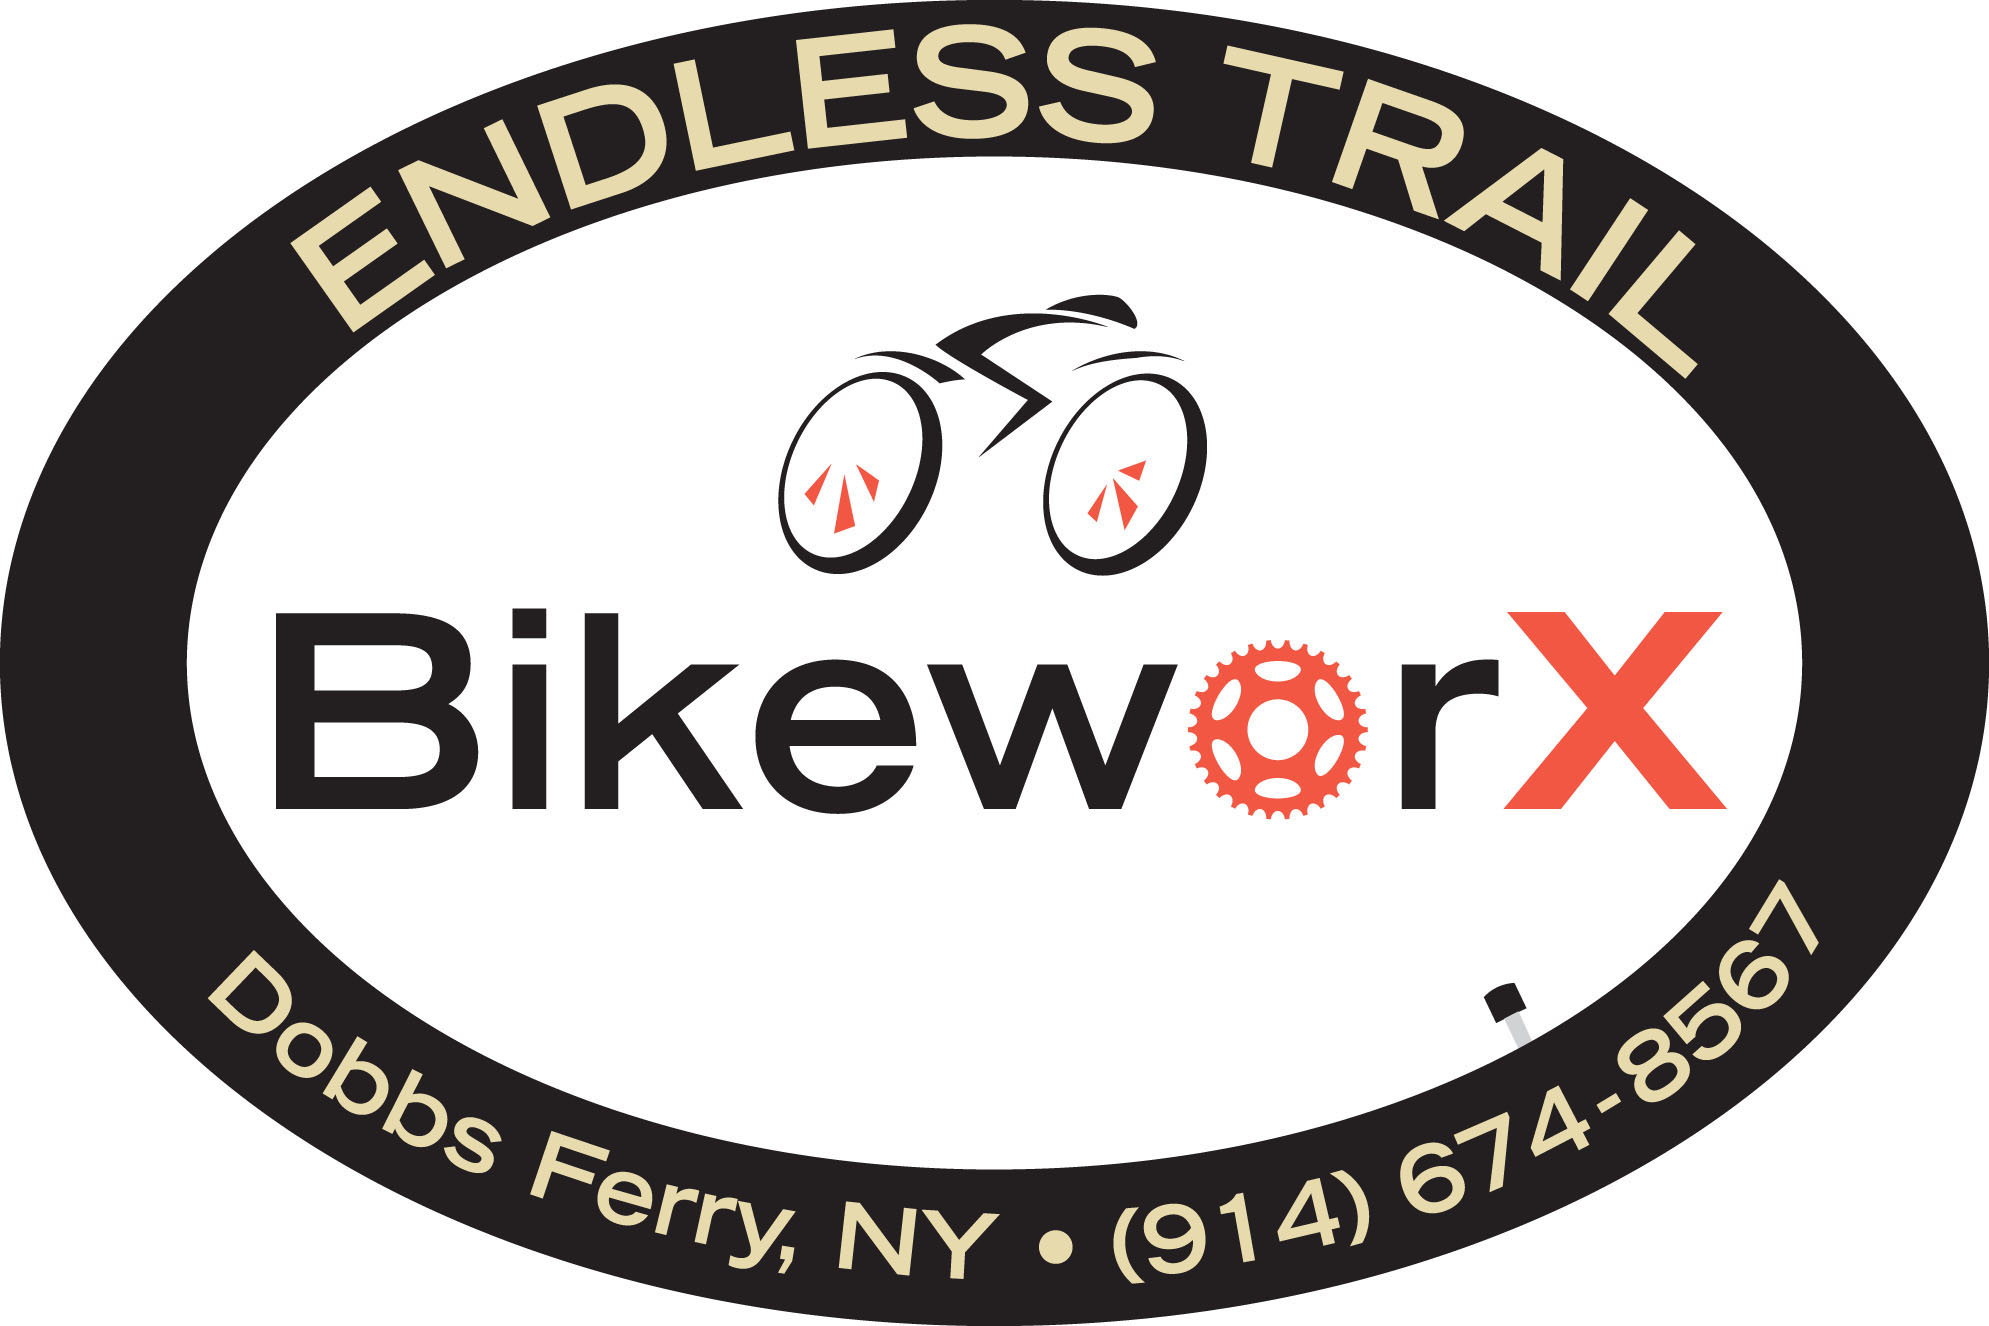 endless_trail_bikeworx